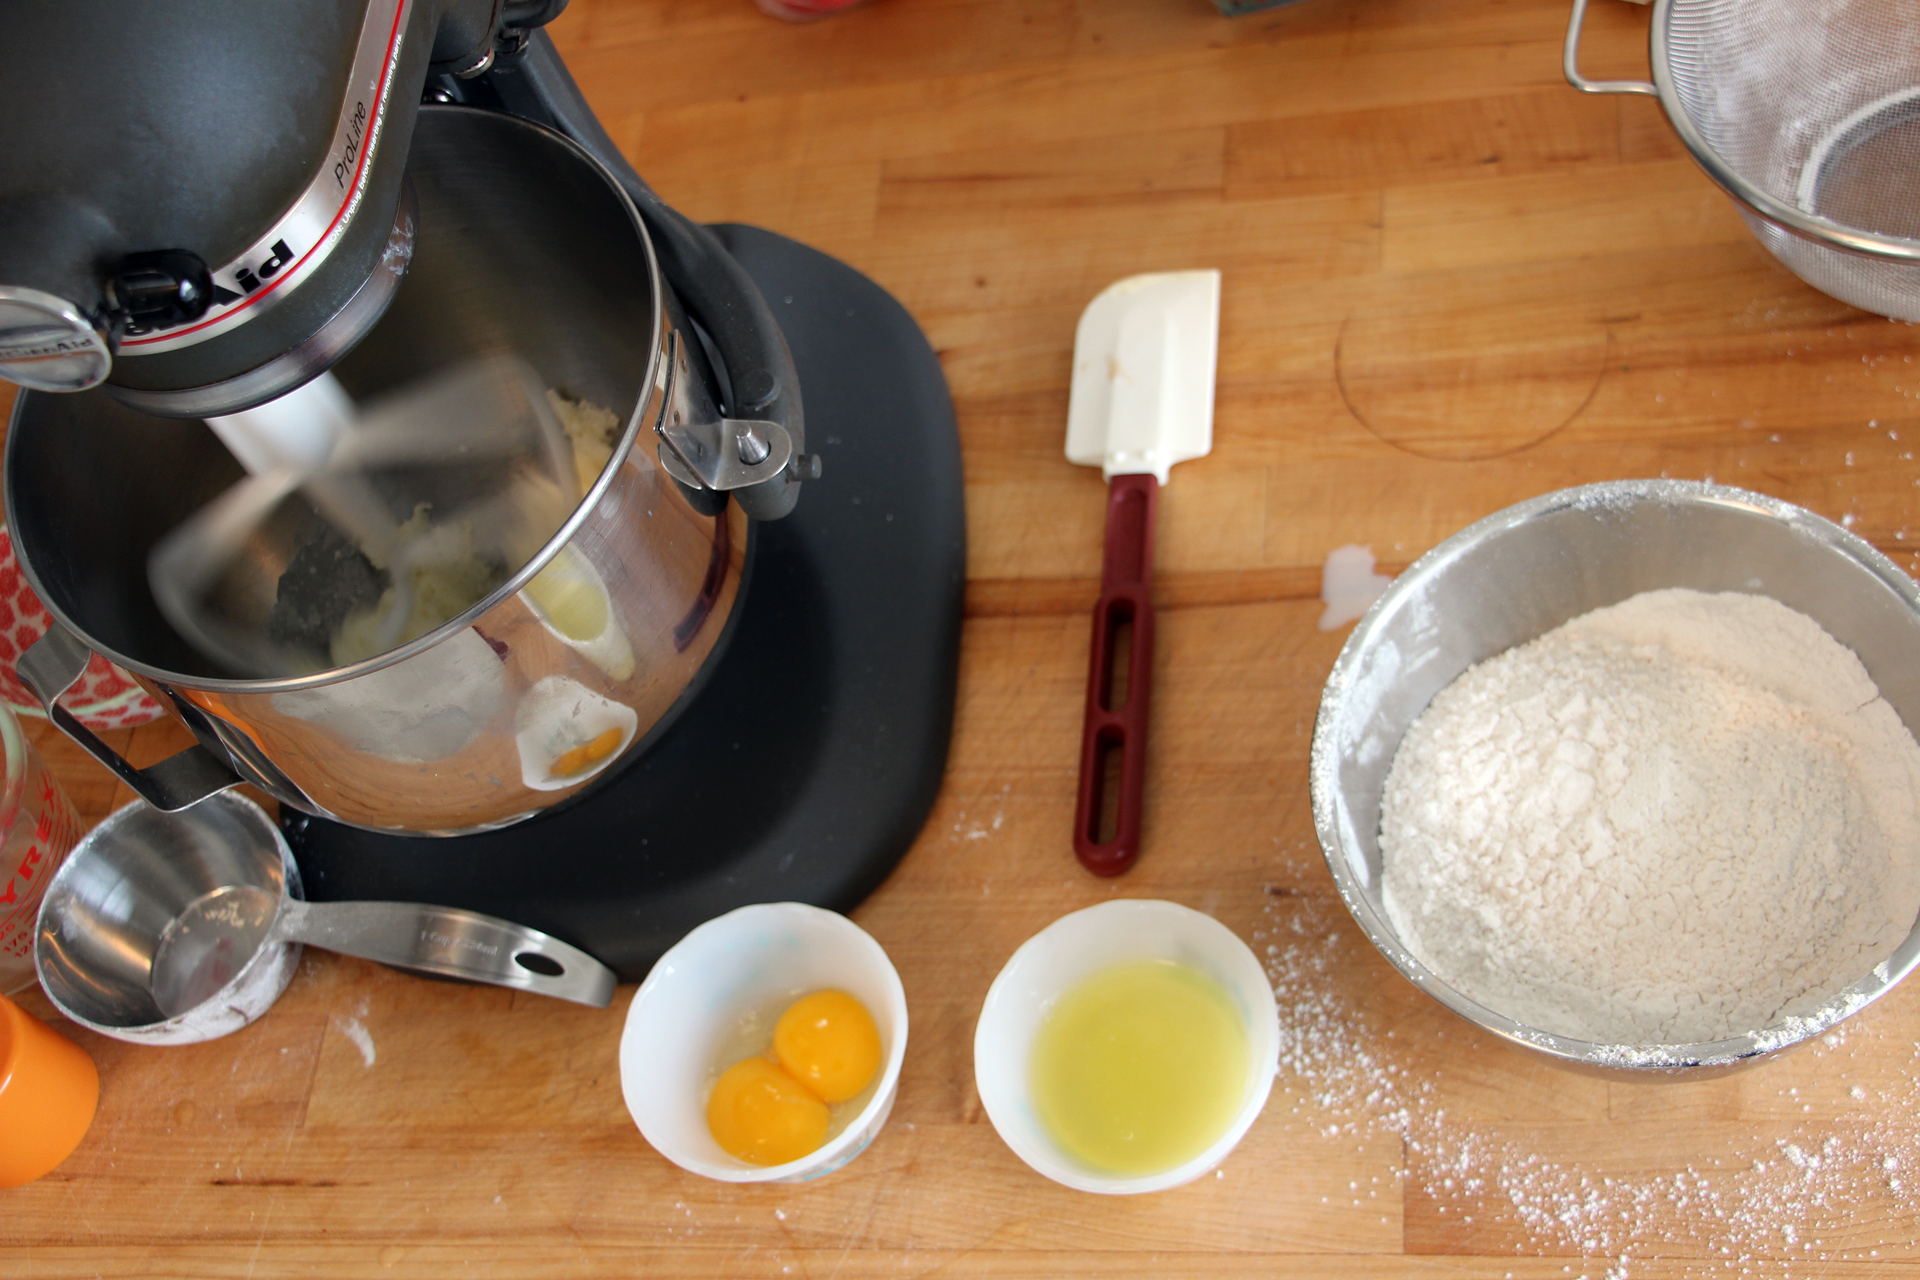 Prepare the dough in the bowl of a stand mixer fitted with the paddle attachment.